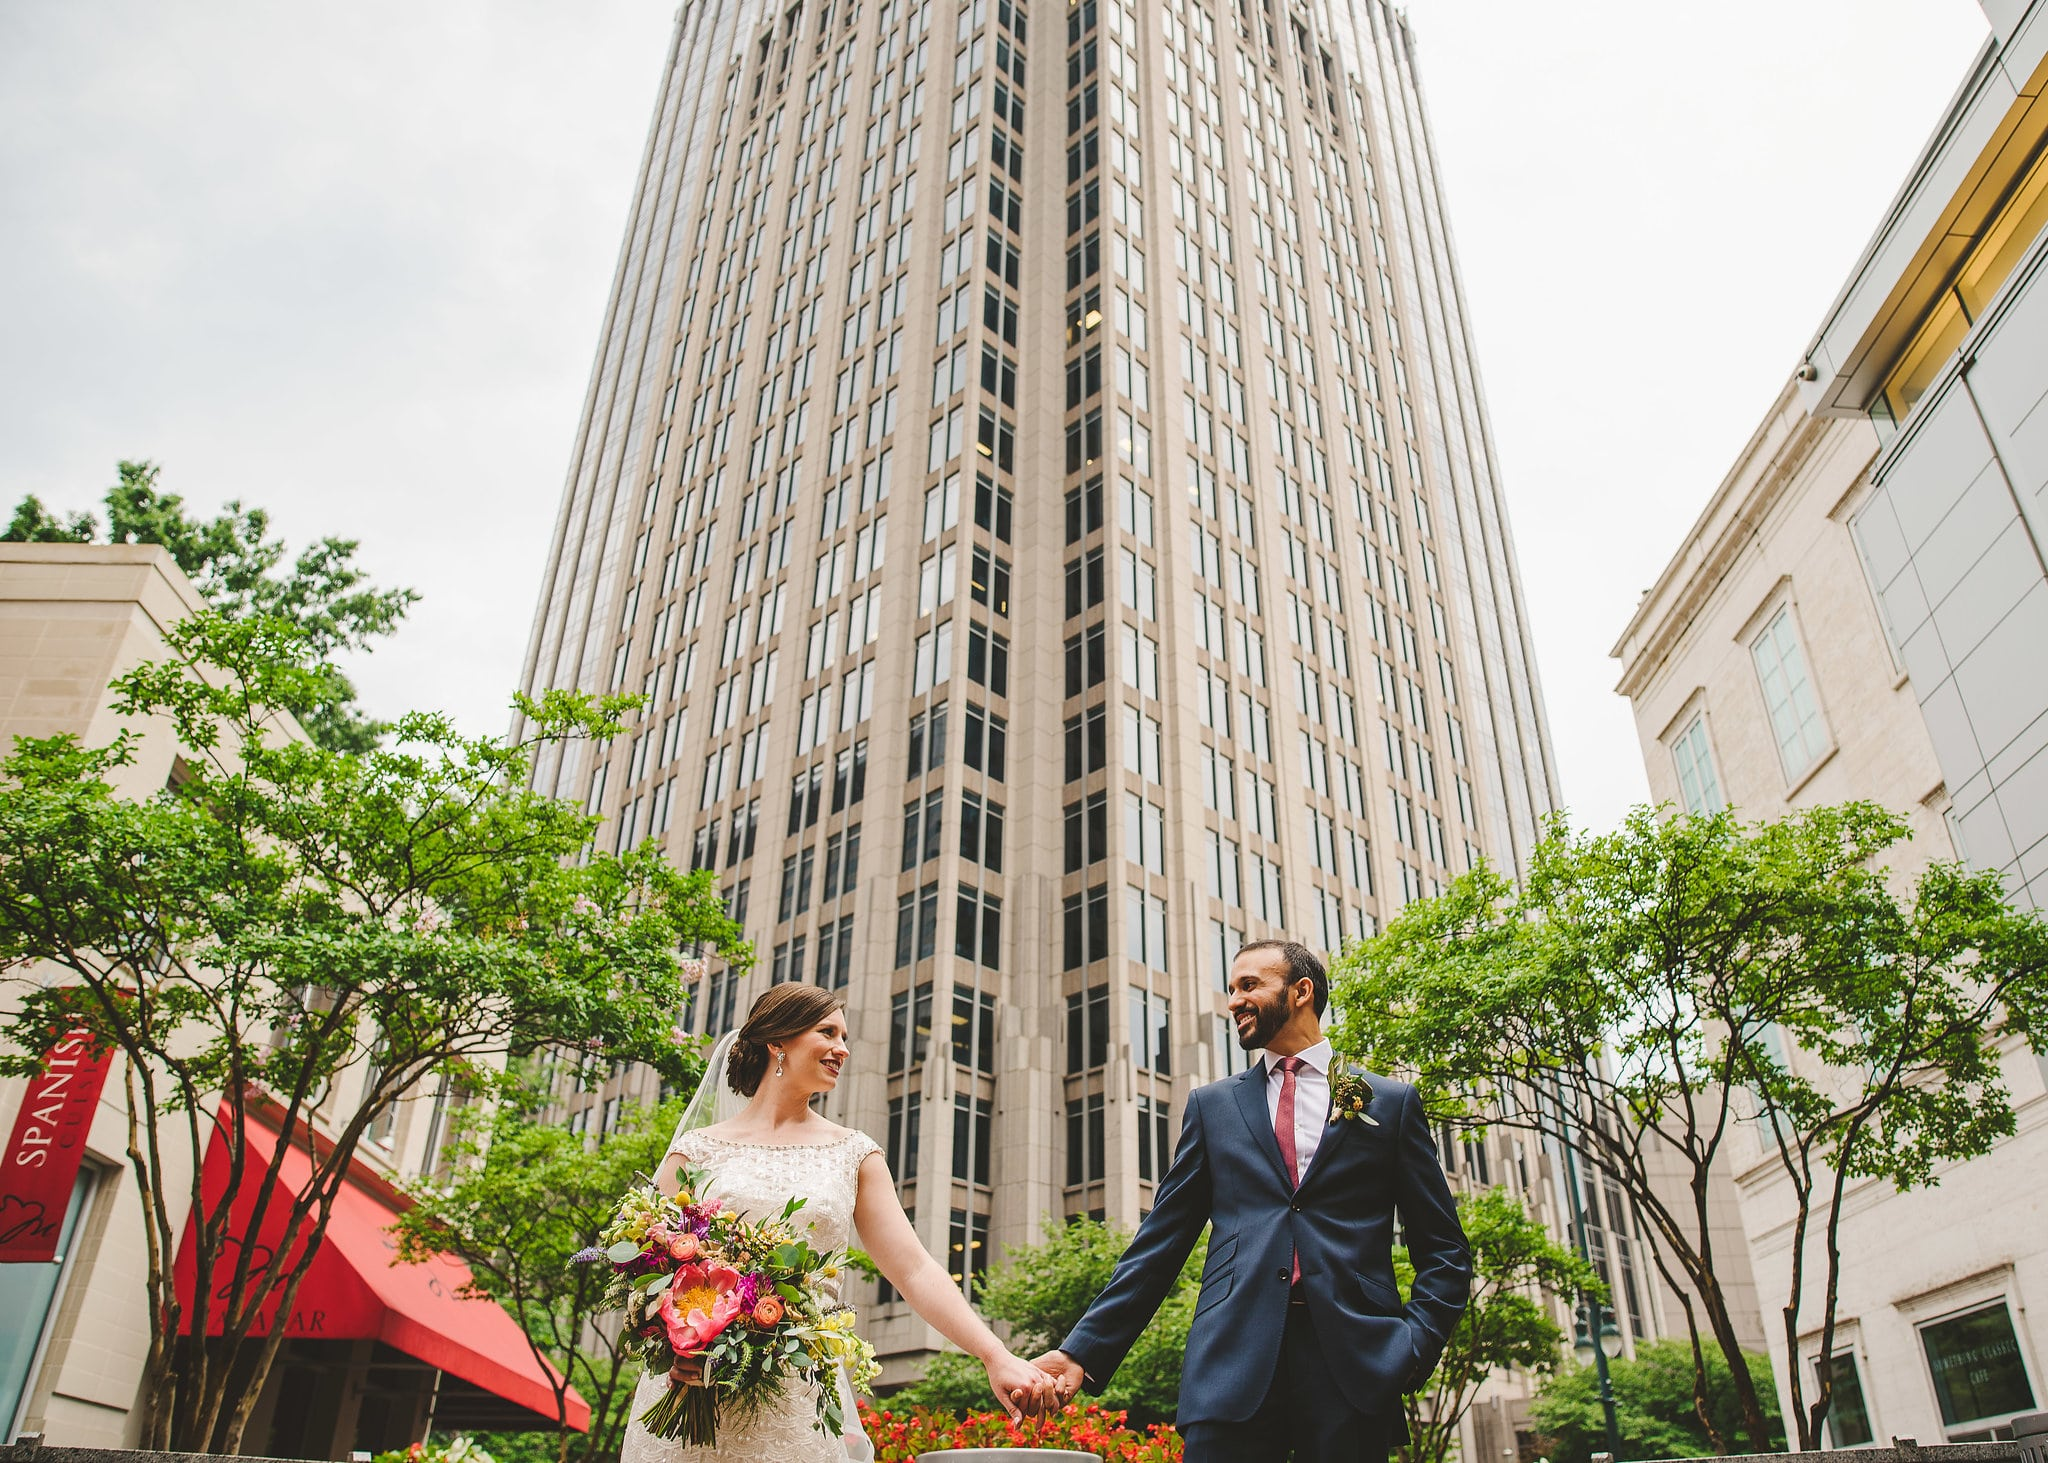 Bride and groom photos in uptown charlotte